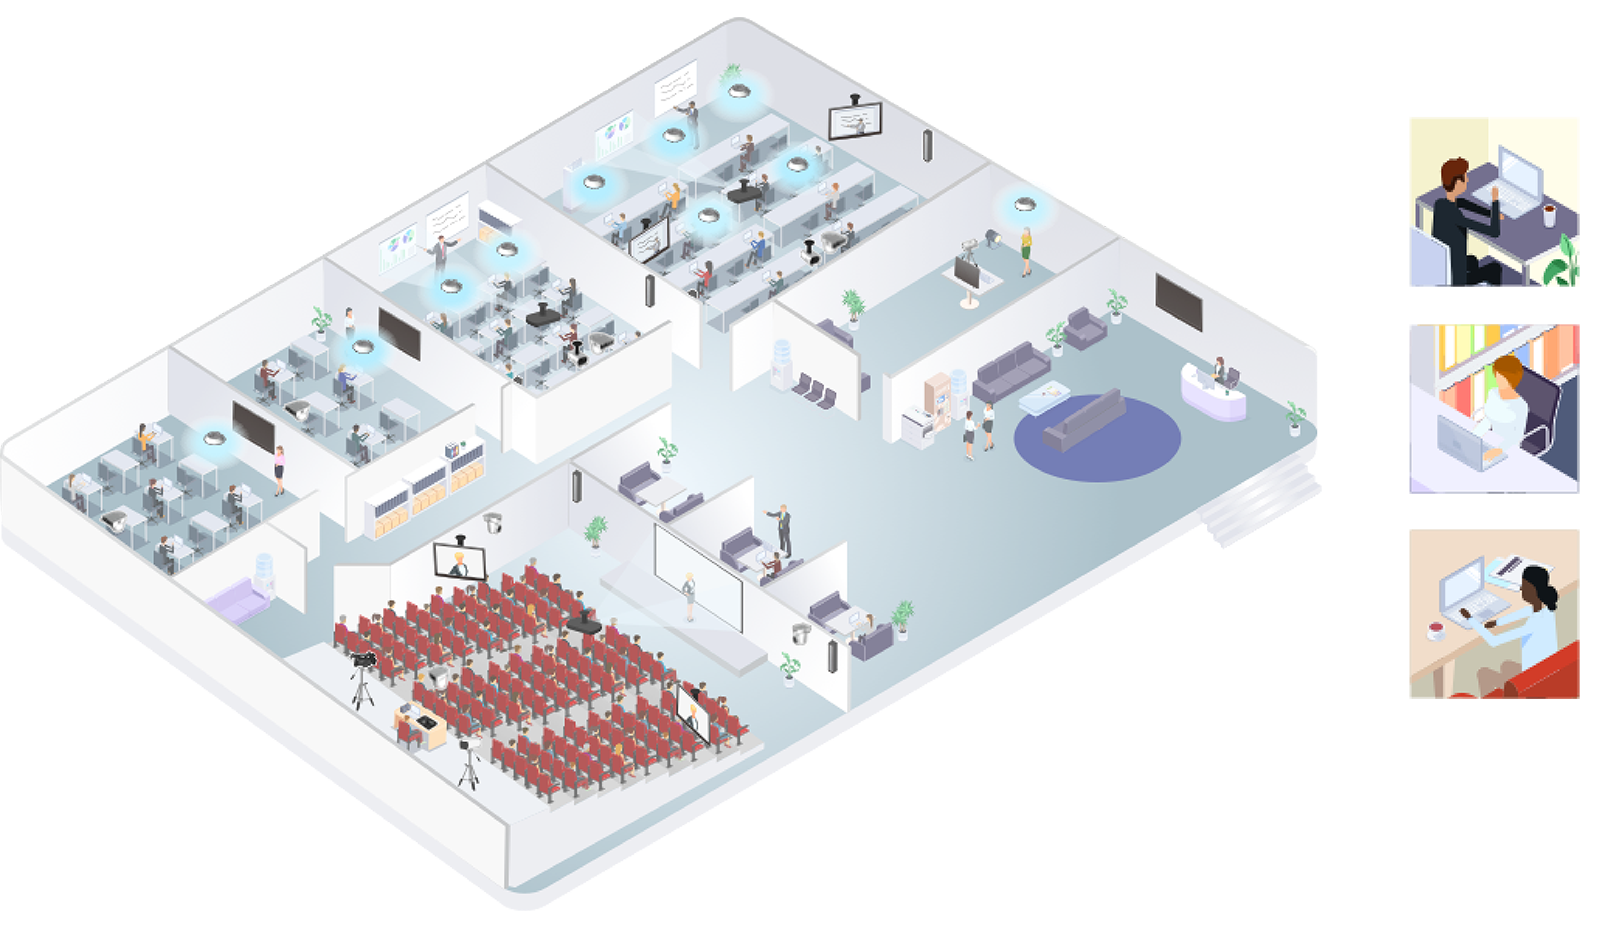 Infographic diagram of Sony's PTZ camera, Beamforming microphone, Edge Analytics appliance and BRAVIA displays being utilised in a school setting for wide range of classrooms and easy access for remote locations